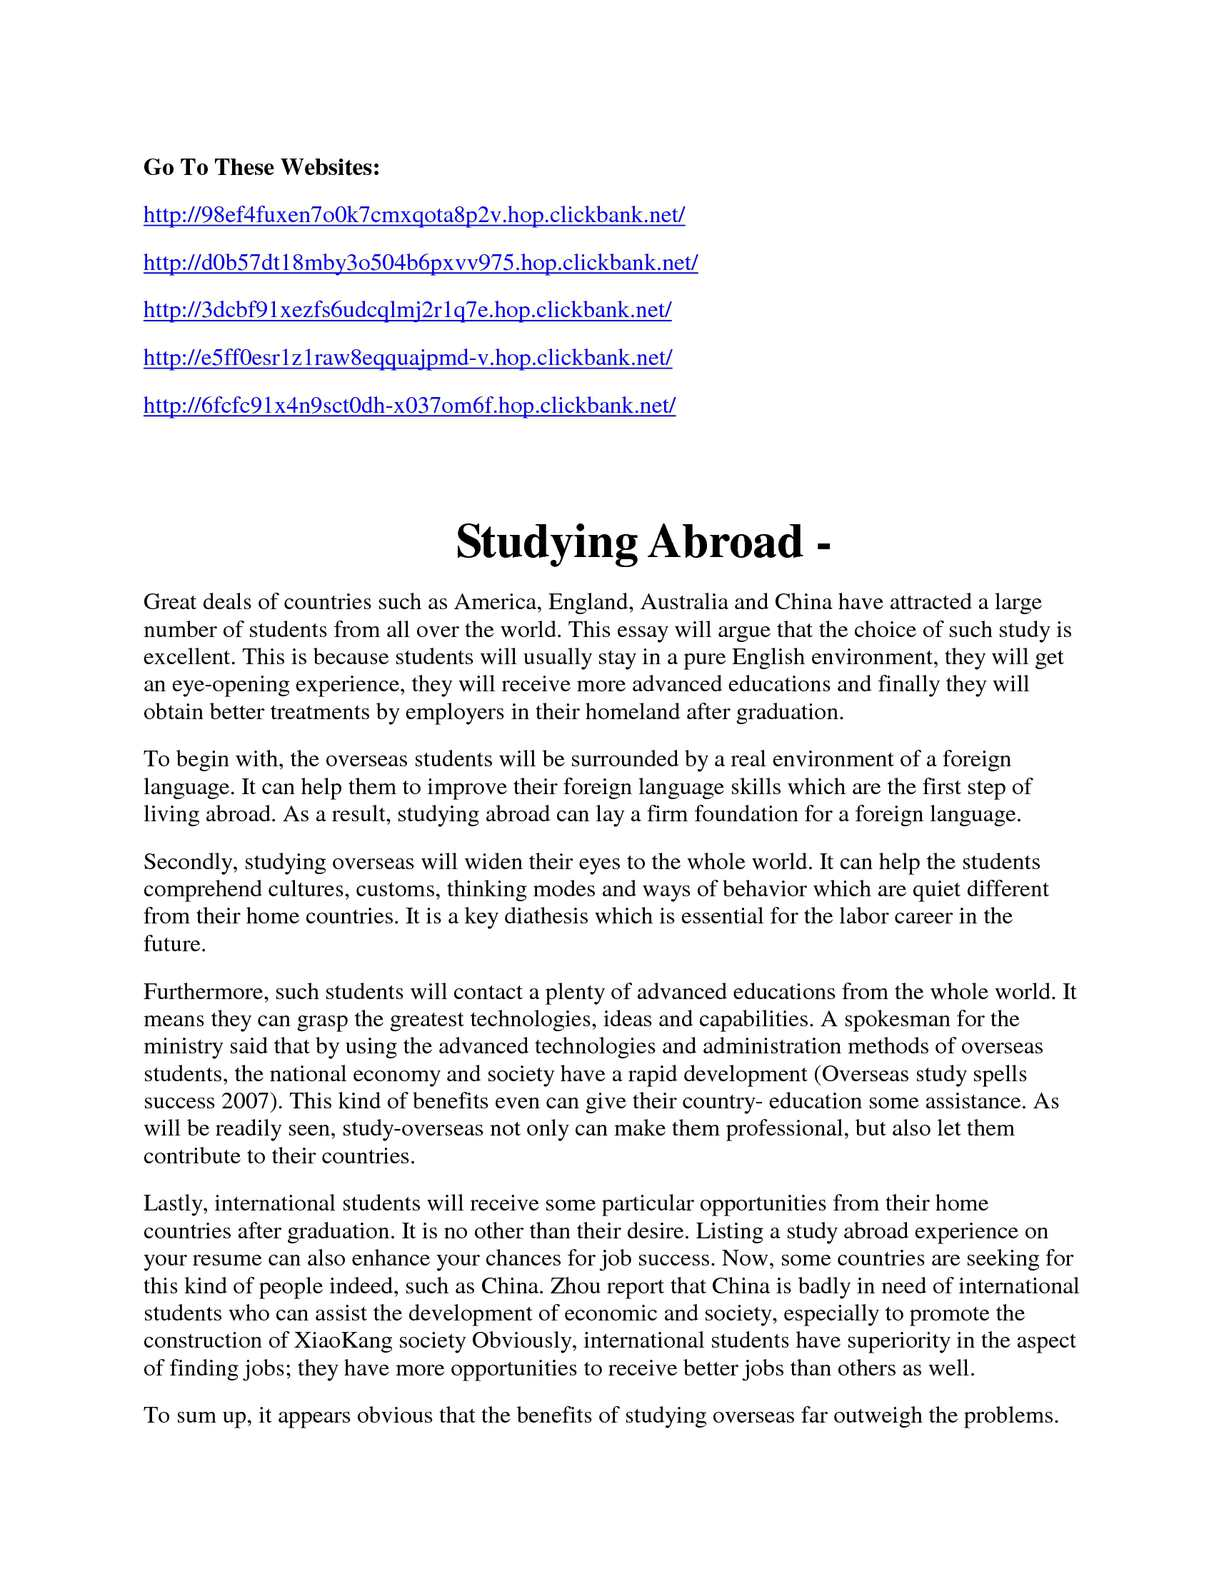 Studying abroad essay